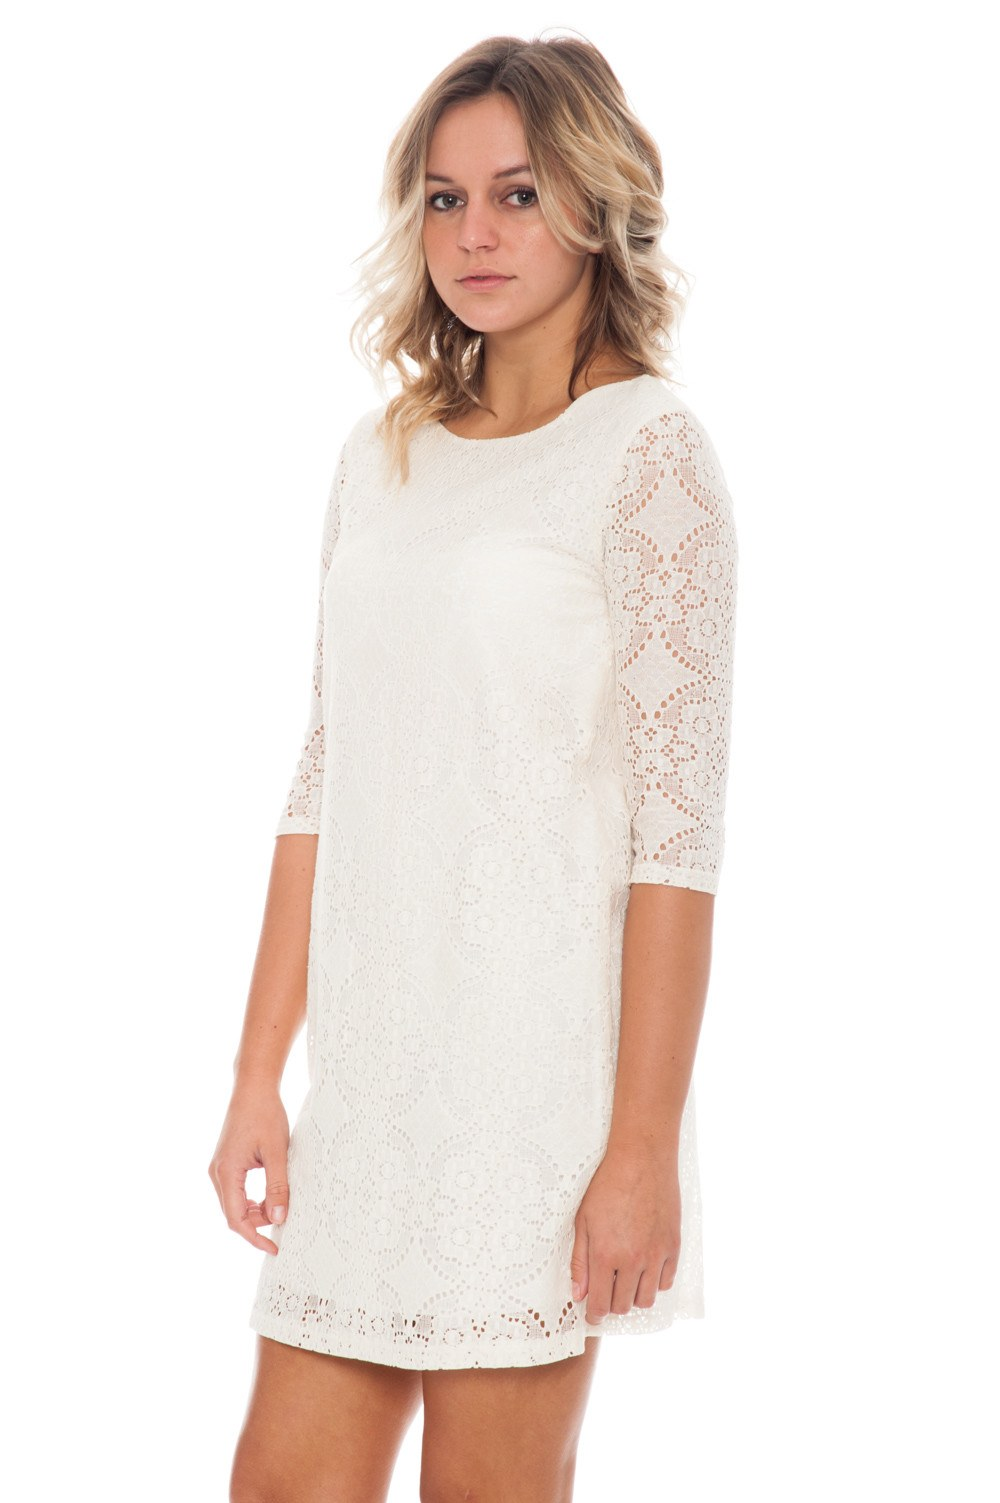 Dress - Shift Lace - 1